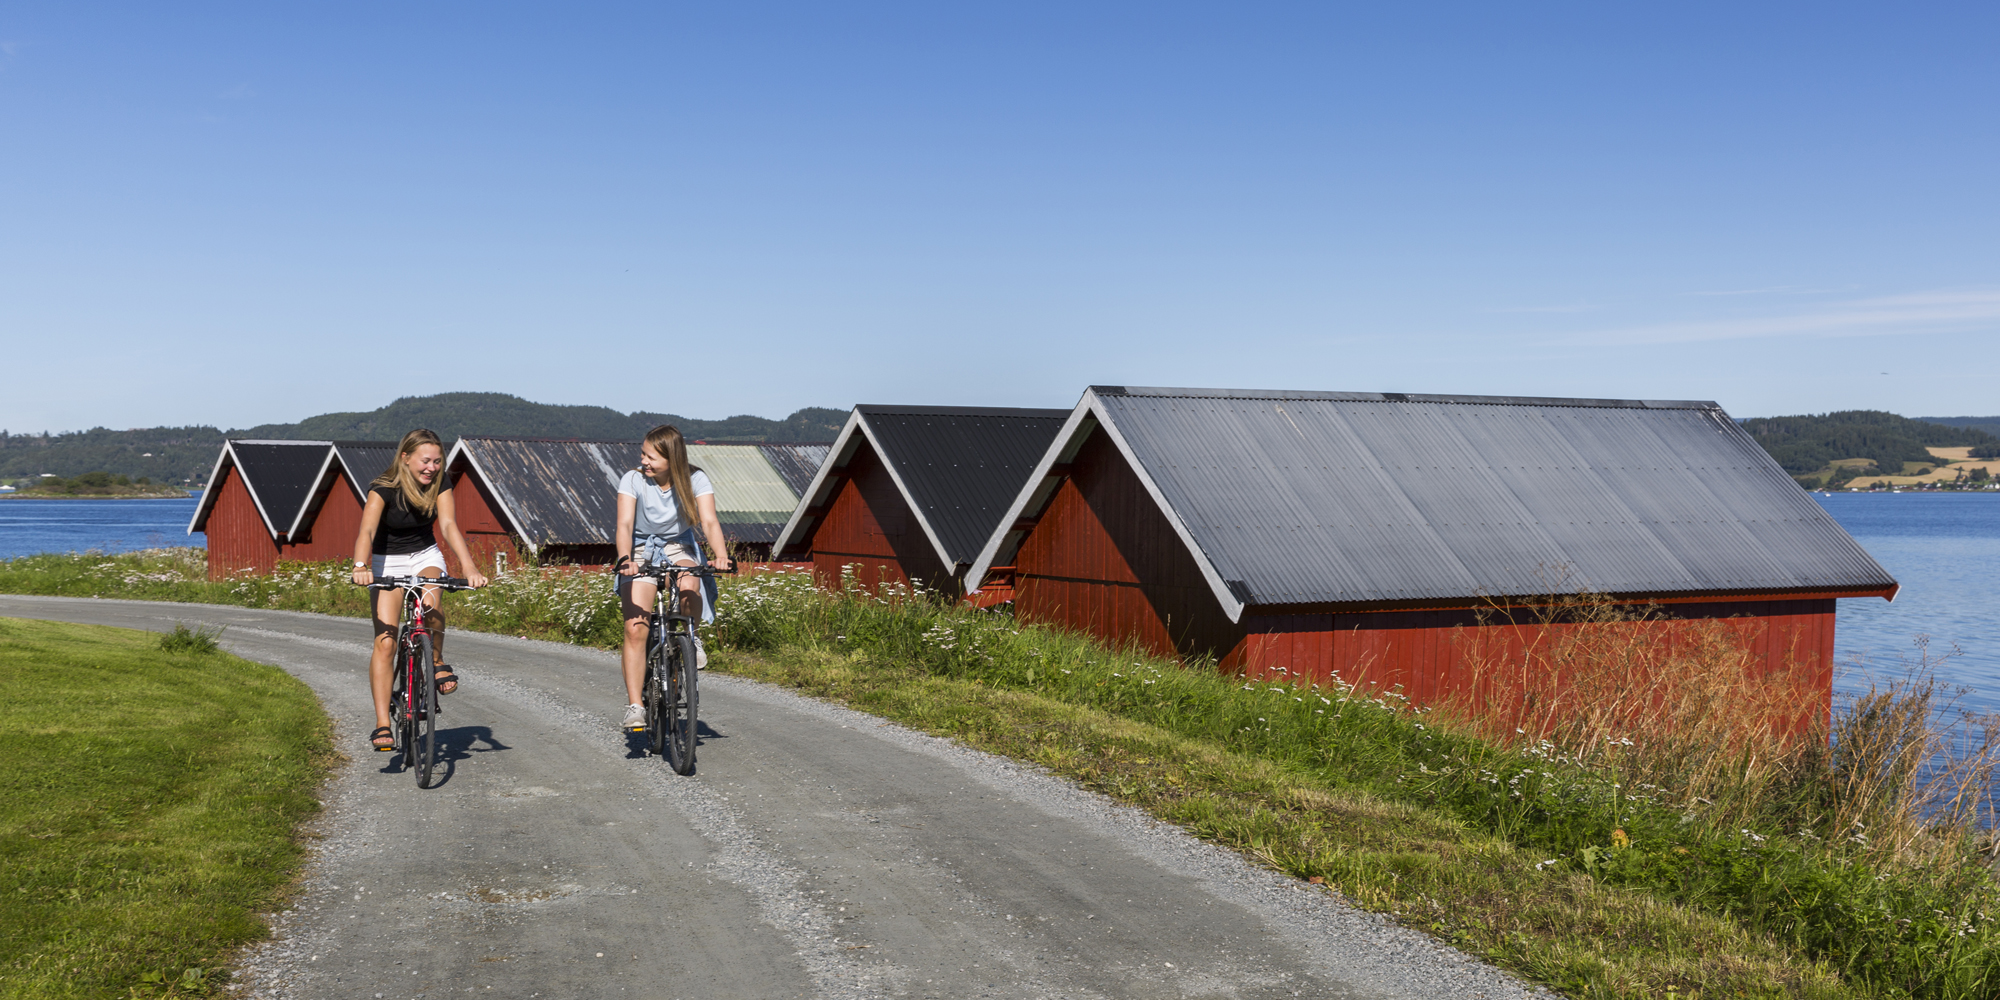 Biking in Straumen at Inderøy, along the Borgenfjorden. Copyright: Lena Johnsen